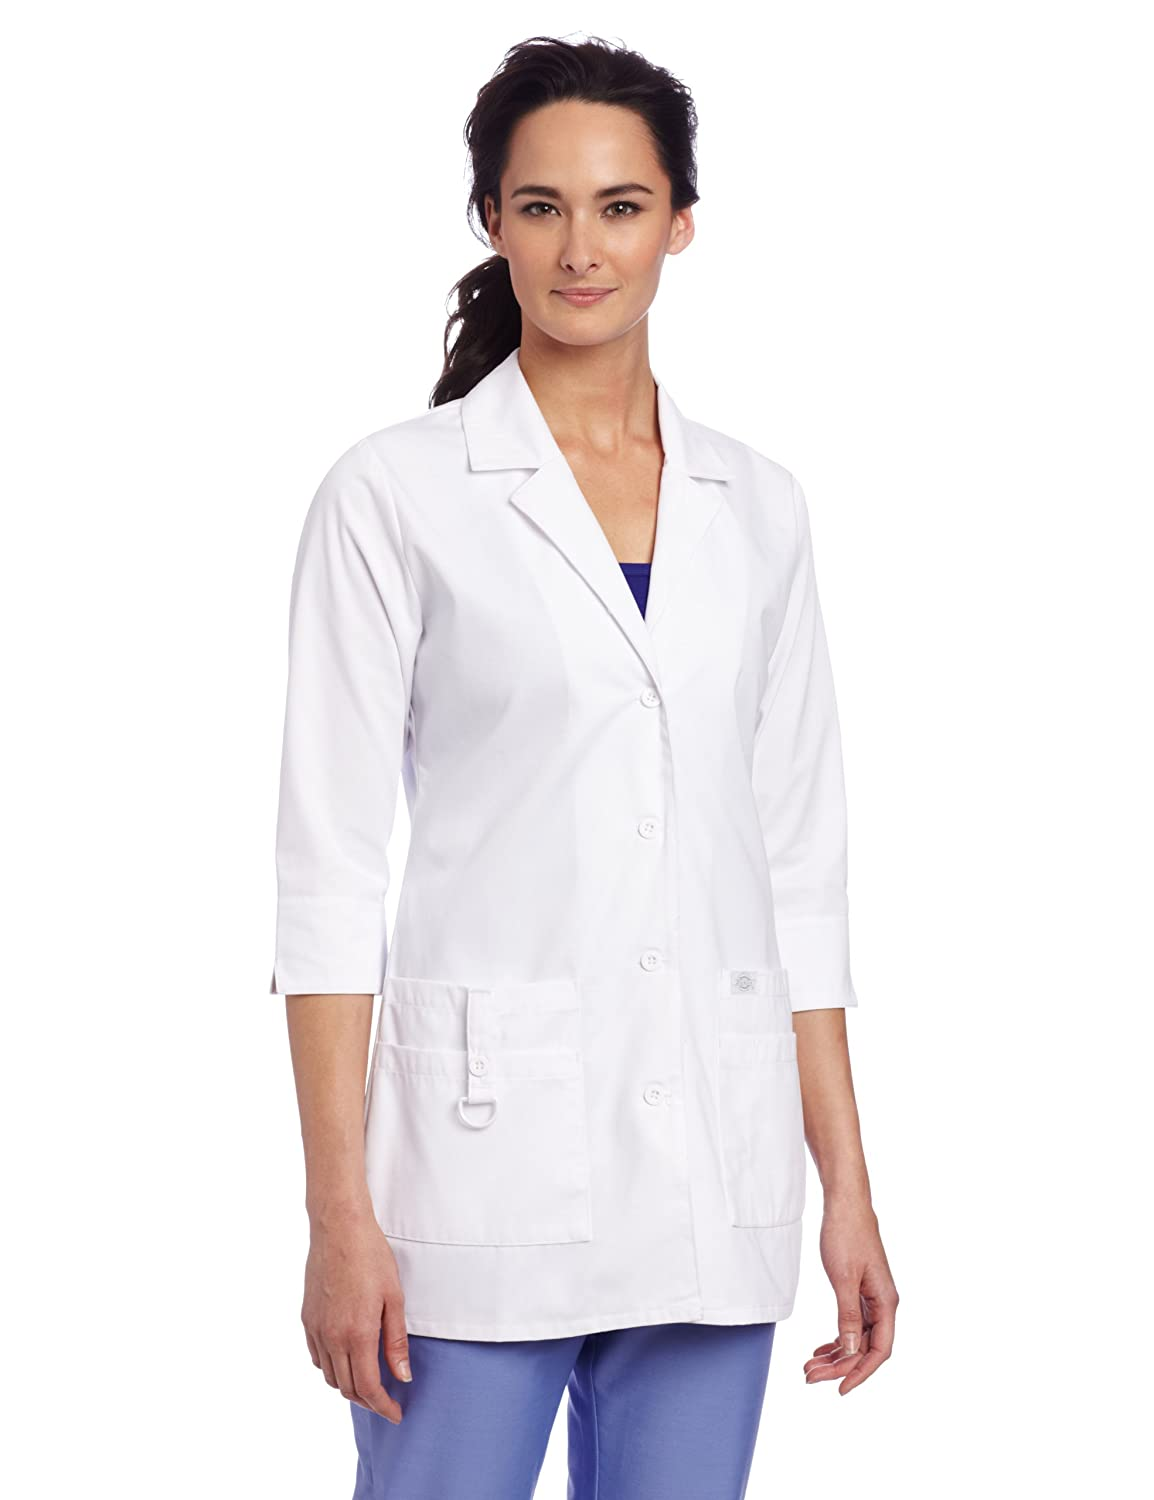 Amazon.com: Medgear Women's Short Sleeves Lab Coat White: Clothing